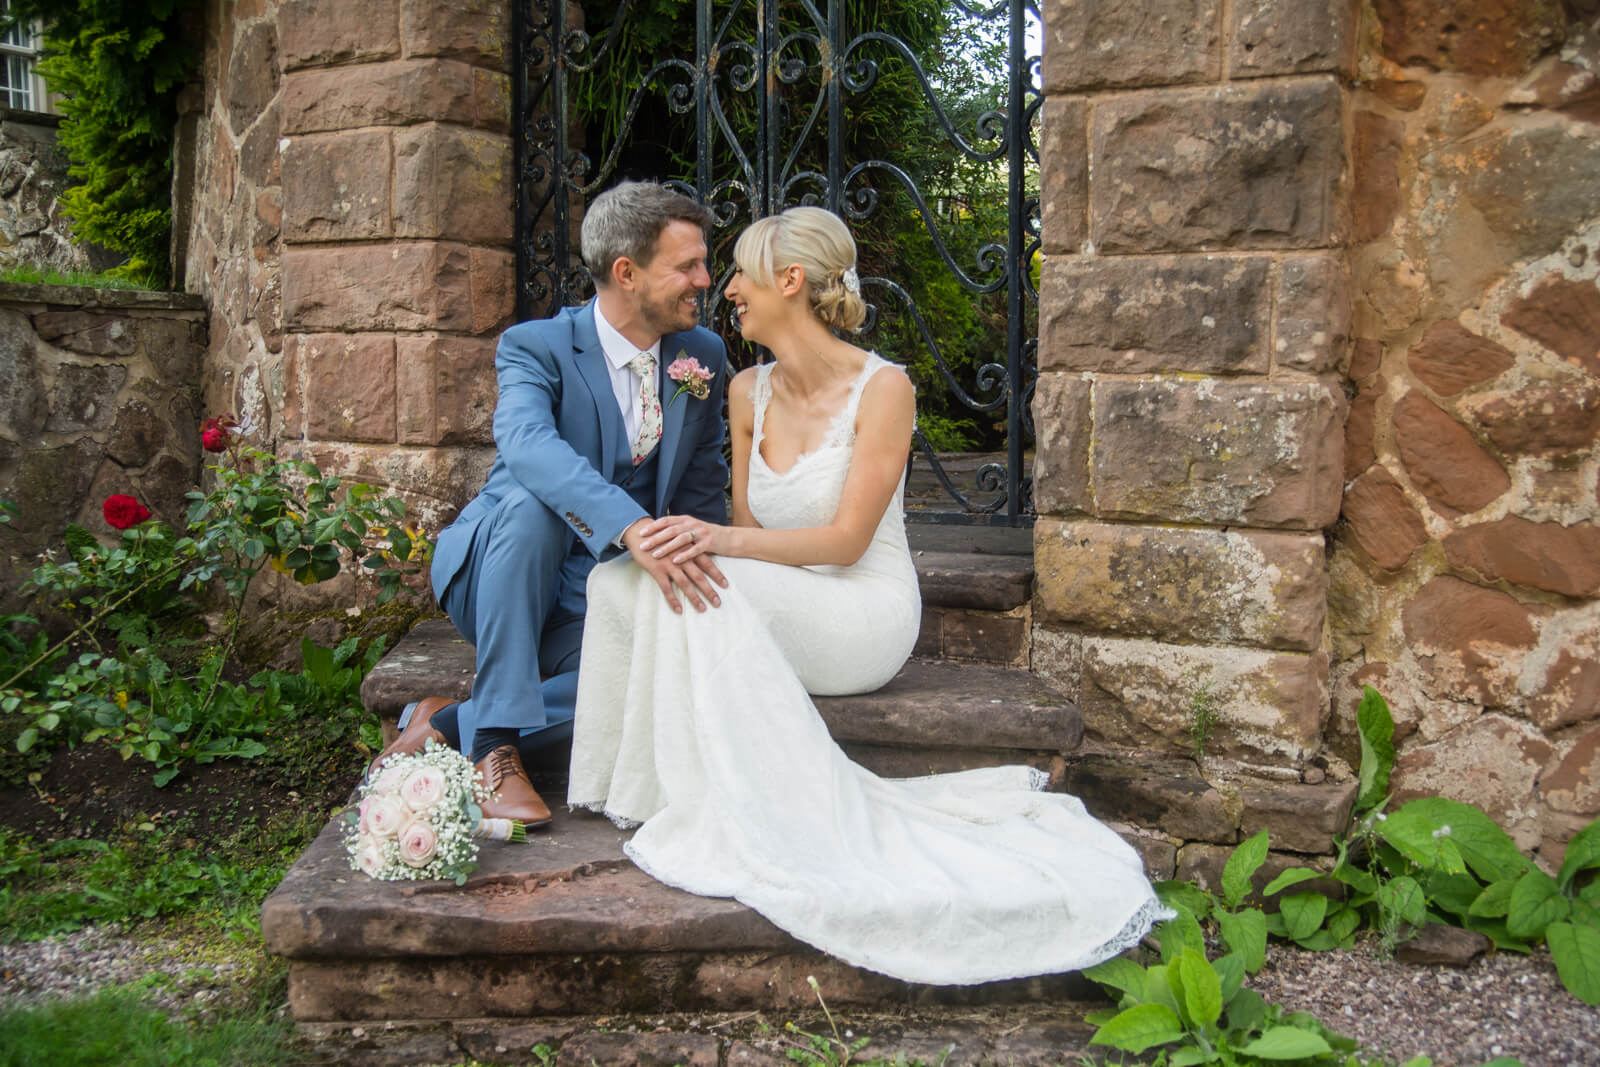 Bride and groom sit facing each other on steps in front of a garden gate